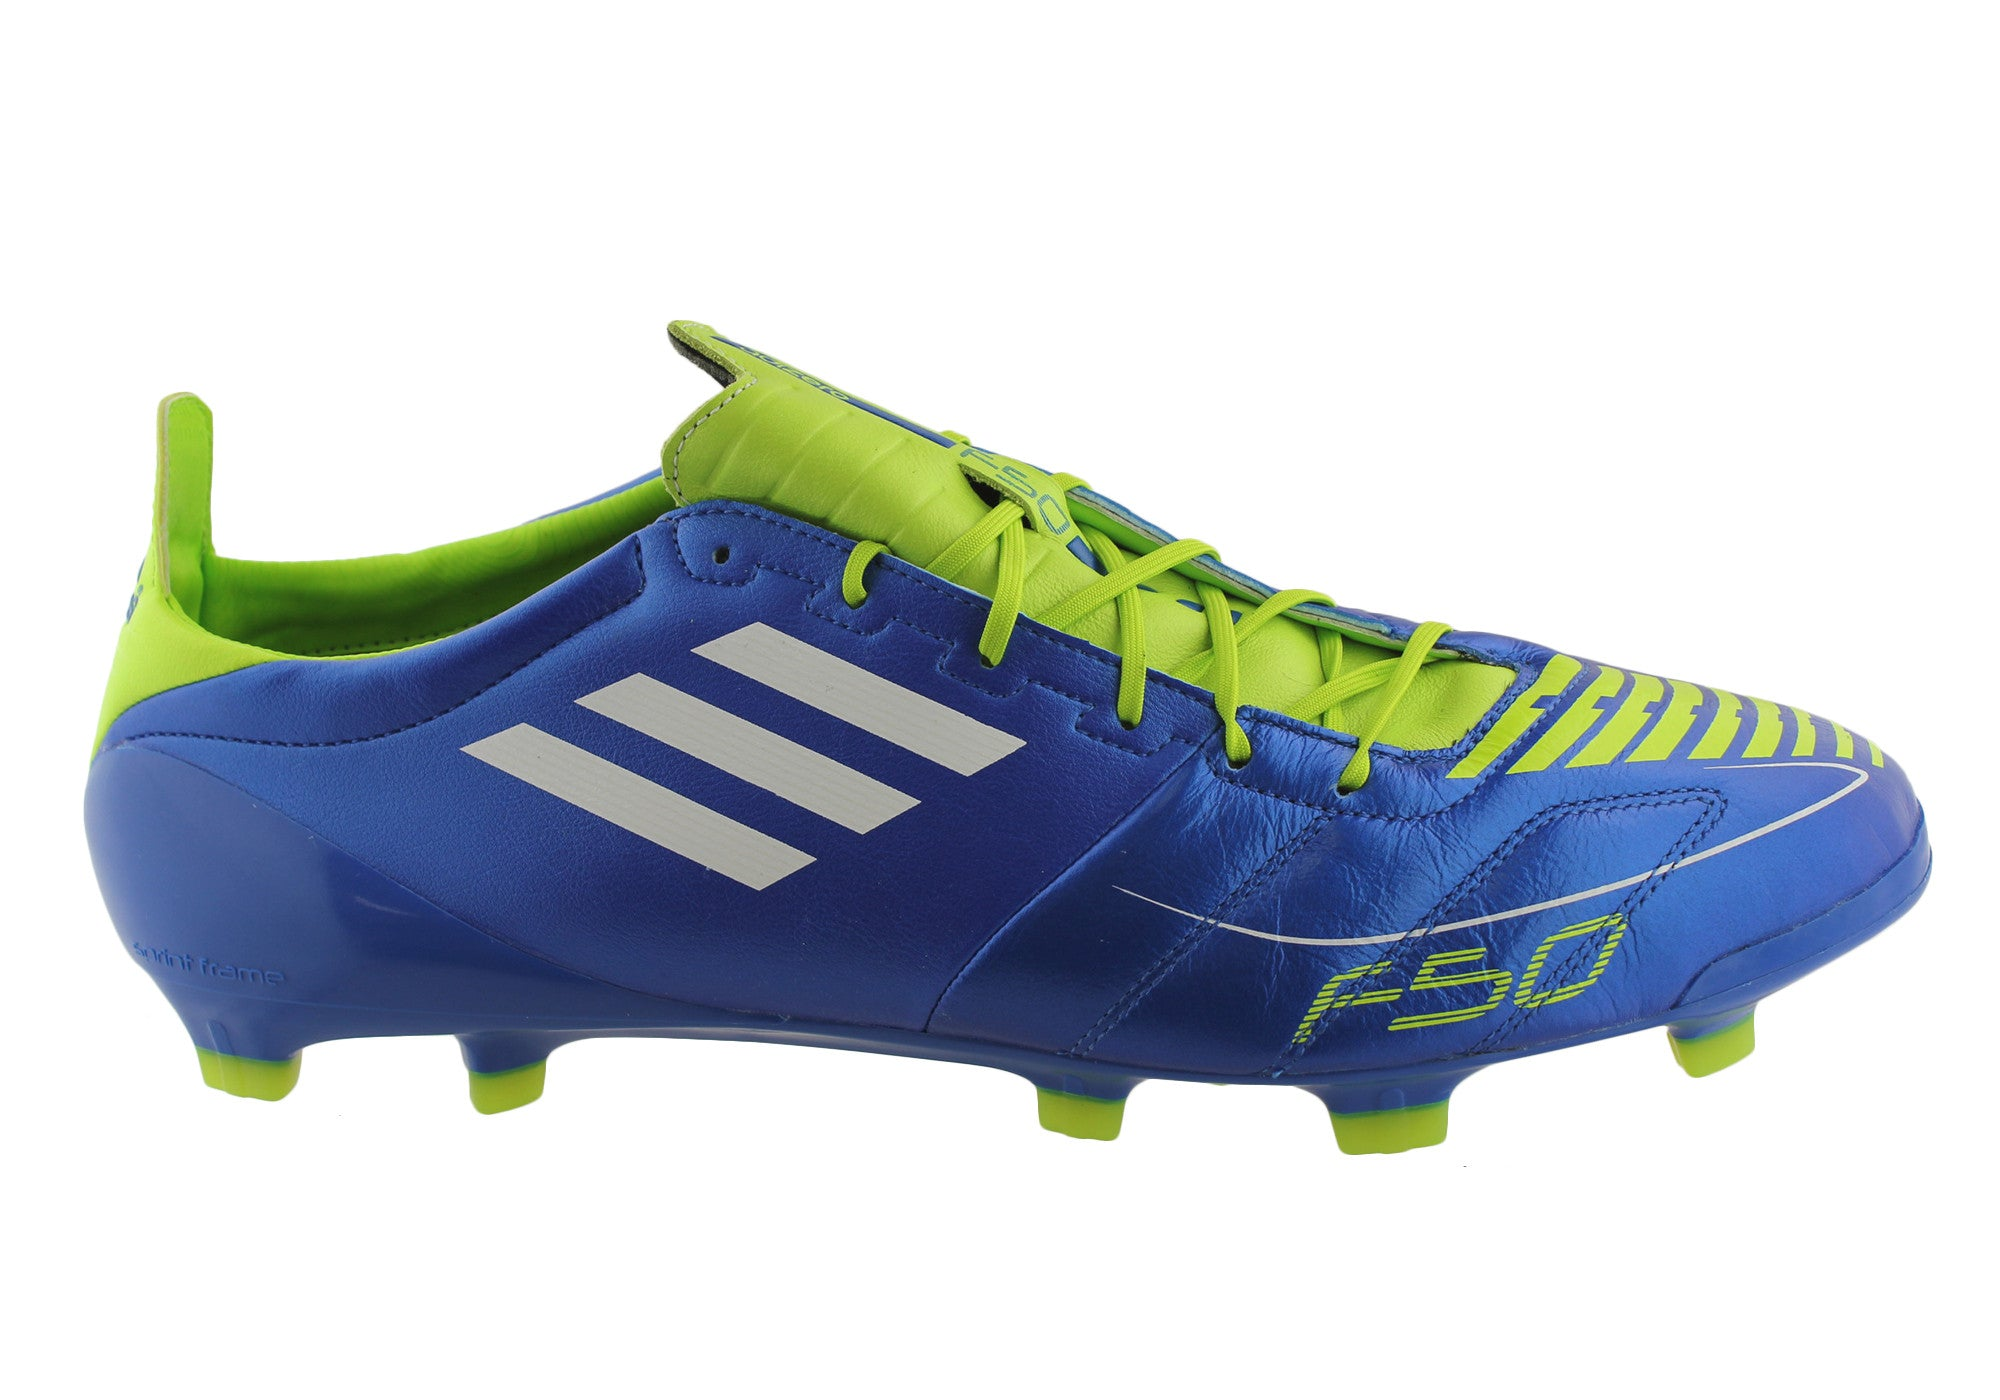 adidas f50 adizero trx fg leather football soccer boots. Black Bedroom Furniture Sets. Home Design Ideas